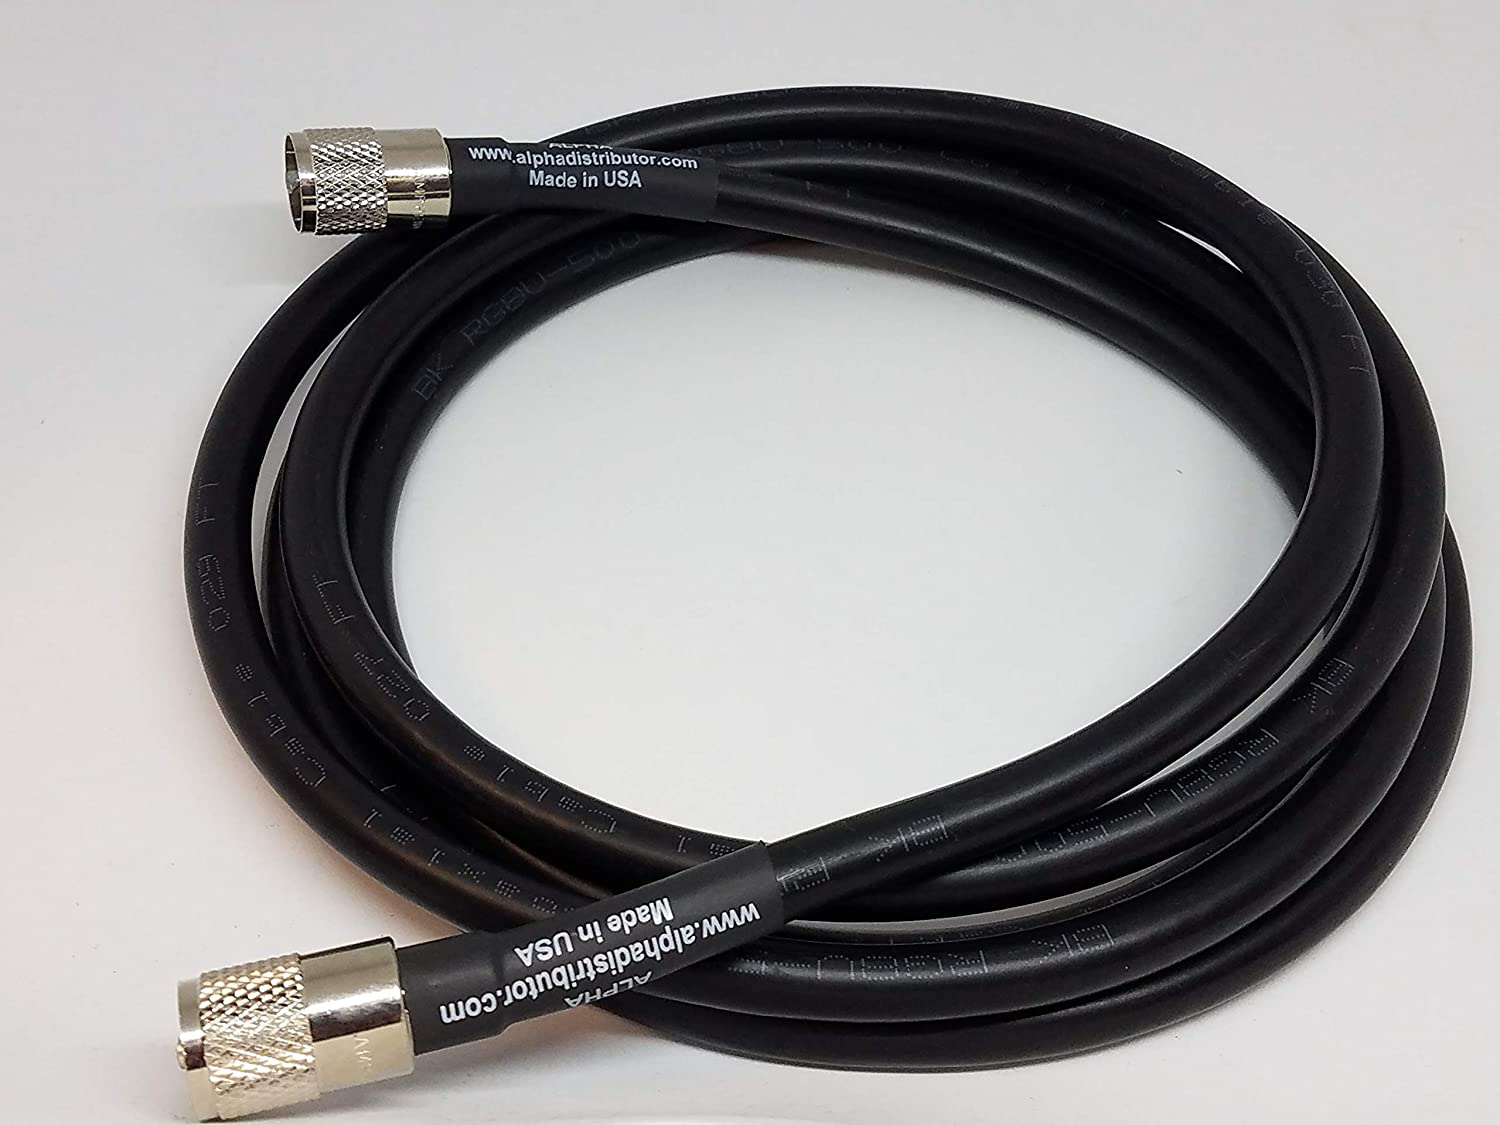 40ft RG8u Coax Cable with AMPHENOL PL259s Attached Alpha